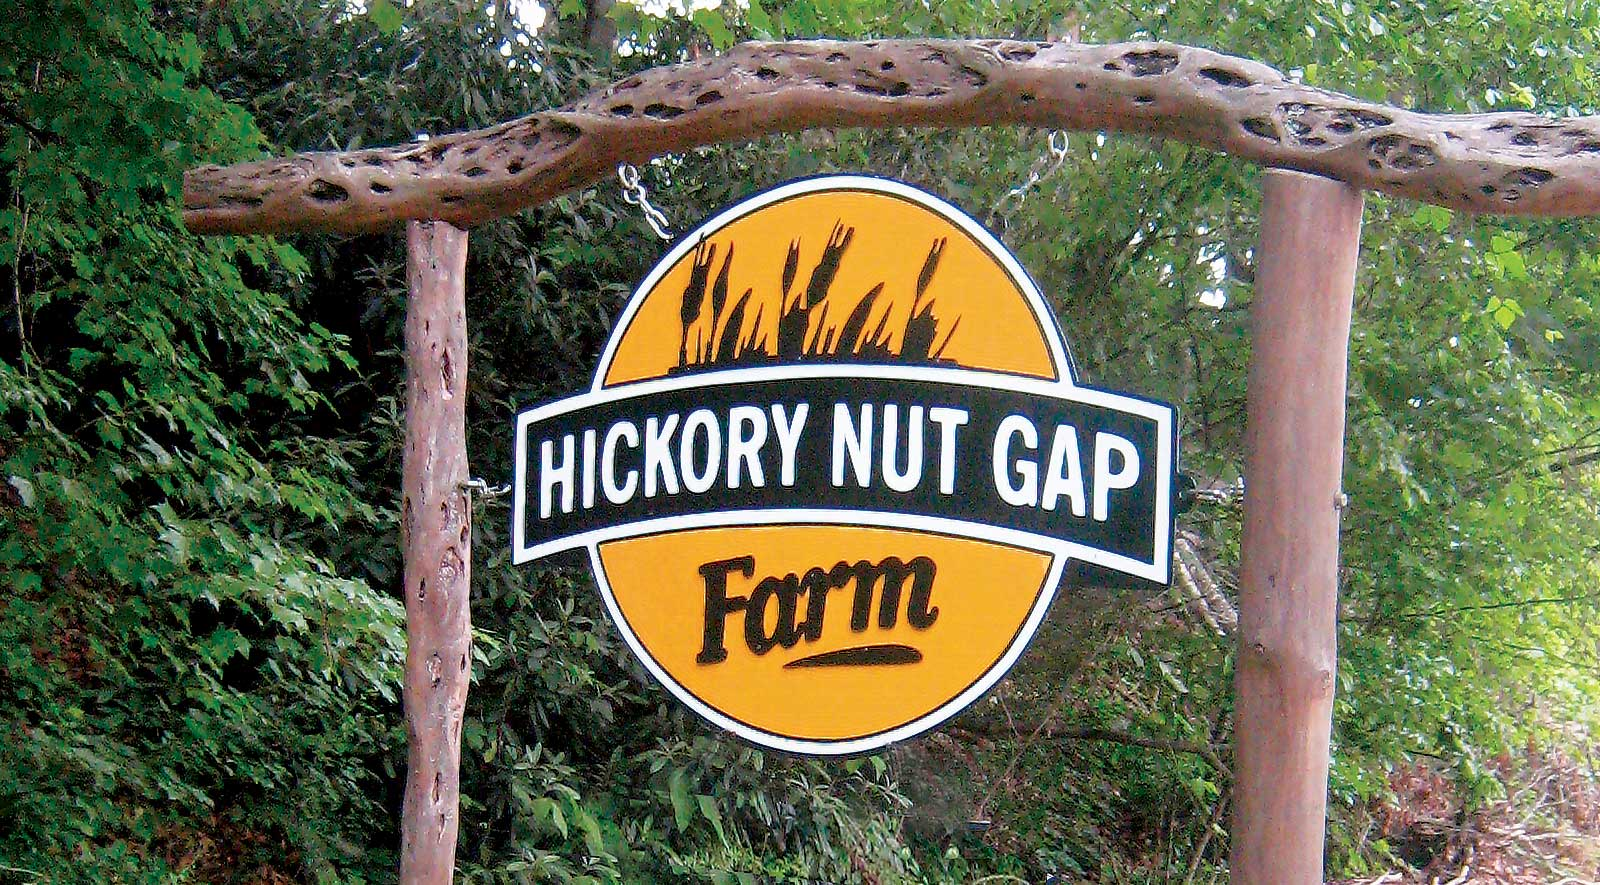 Hickory Nut Gap Farm sign painted in black, white and orange paint hangs from wooden posts, with green lush trees in background.